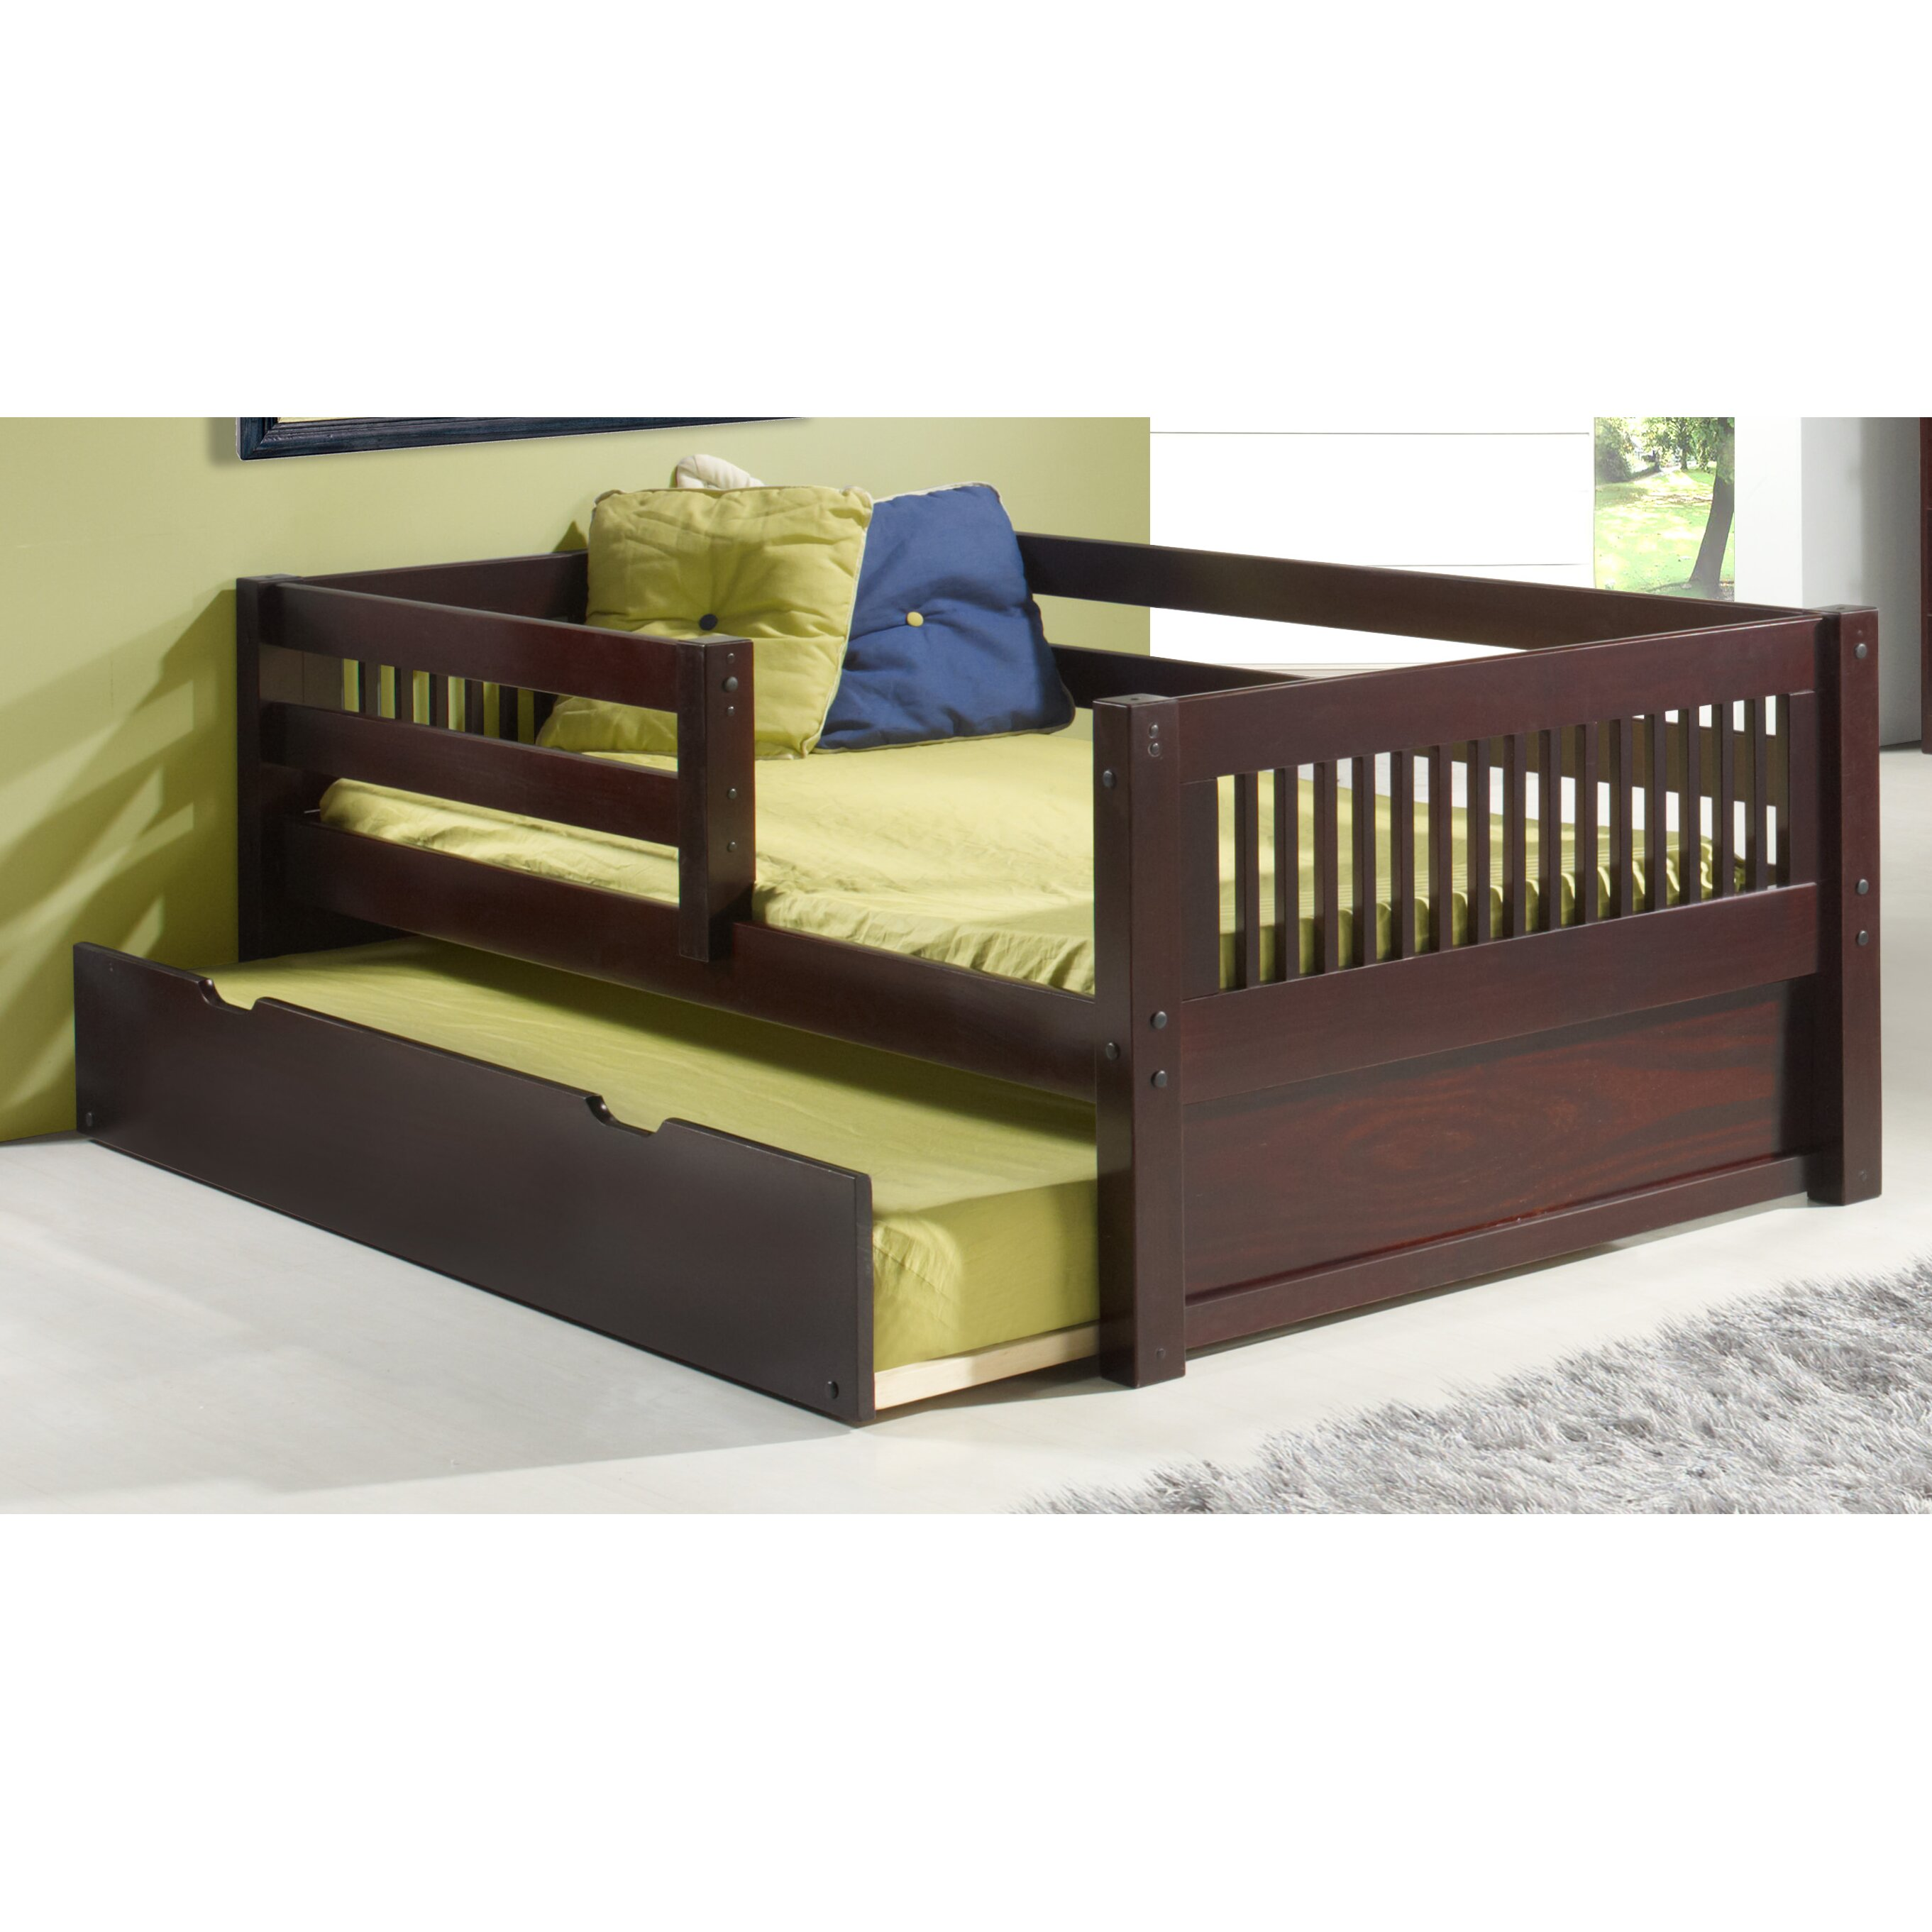 Camaflexi convertible toddler bed with trundle reviews for Beds with trundle